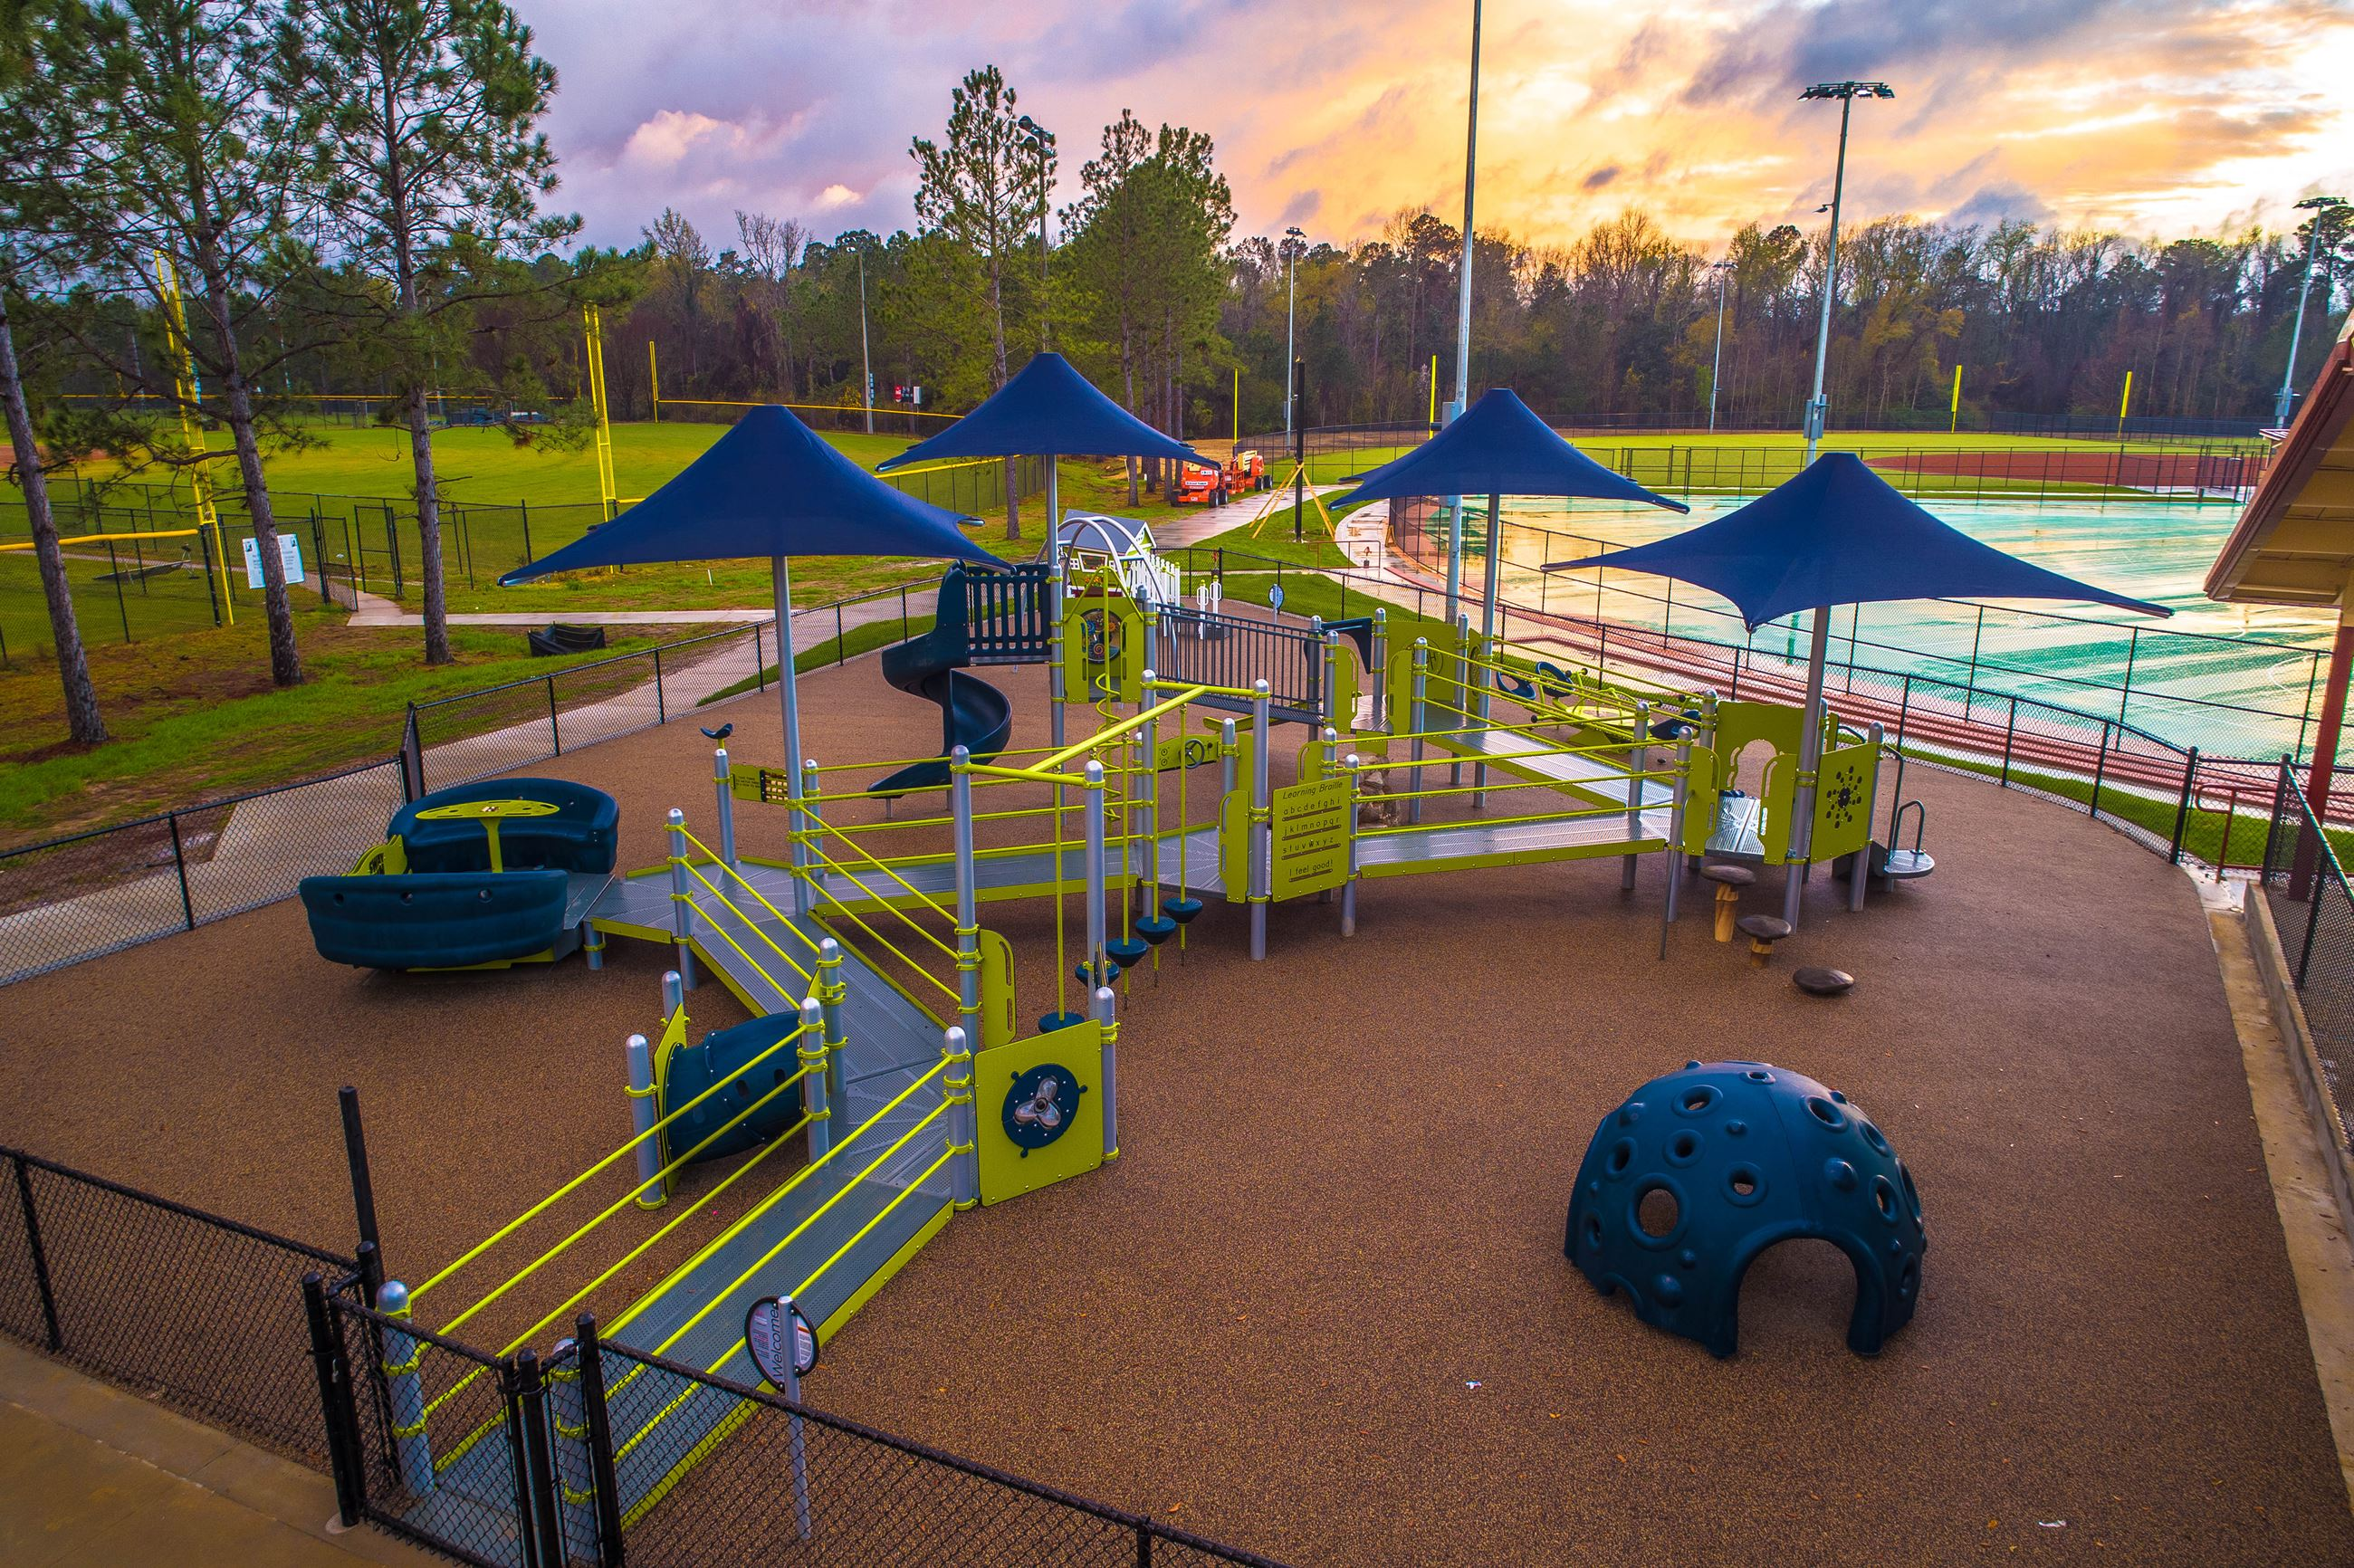 Image of a children's playground.